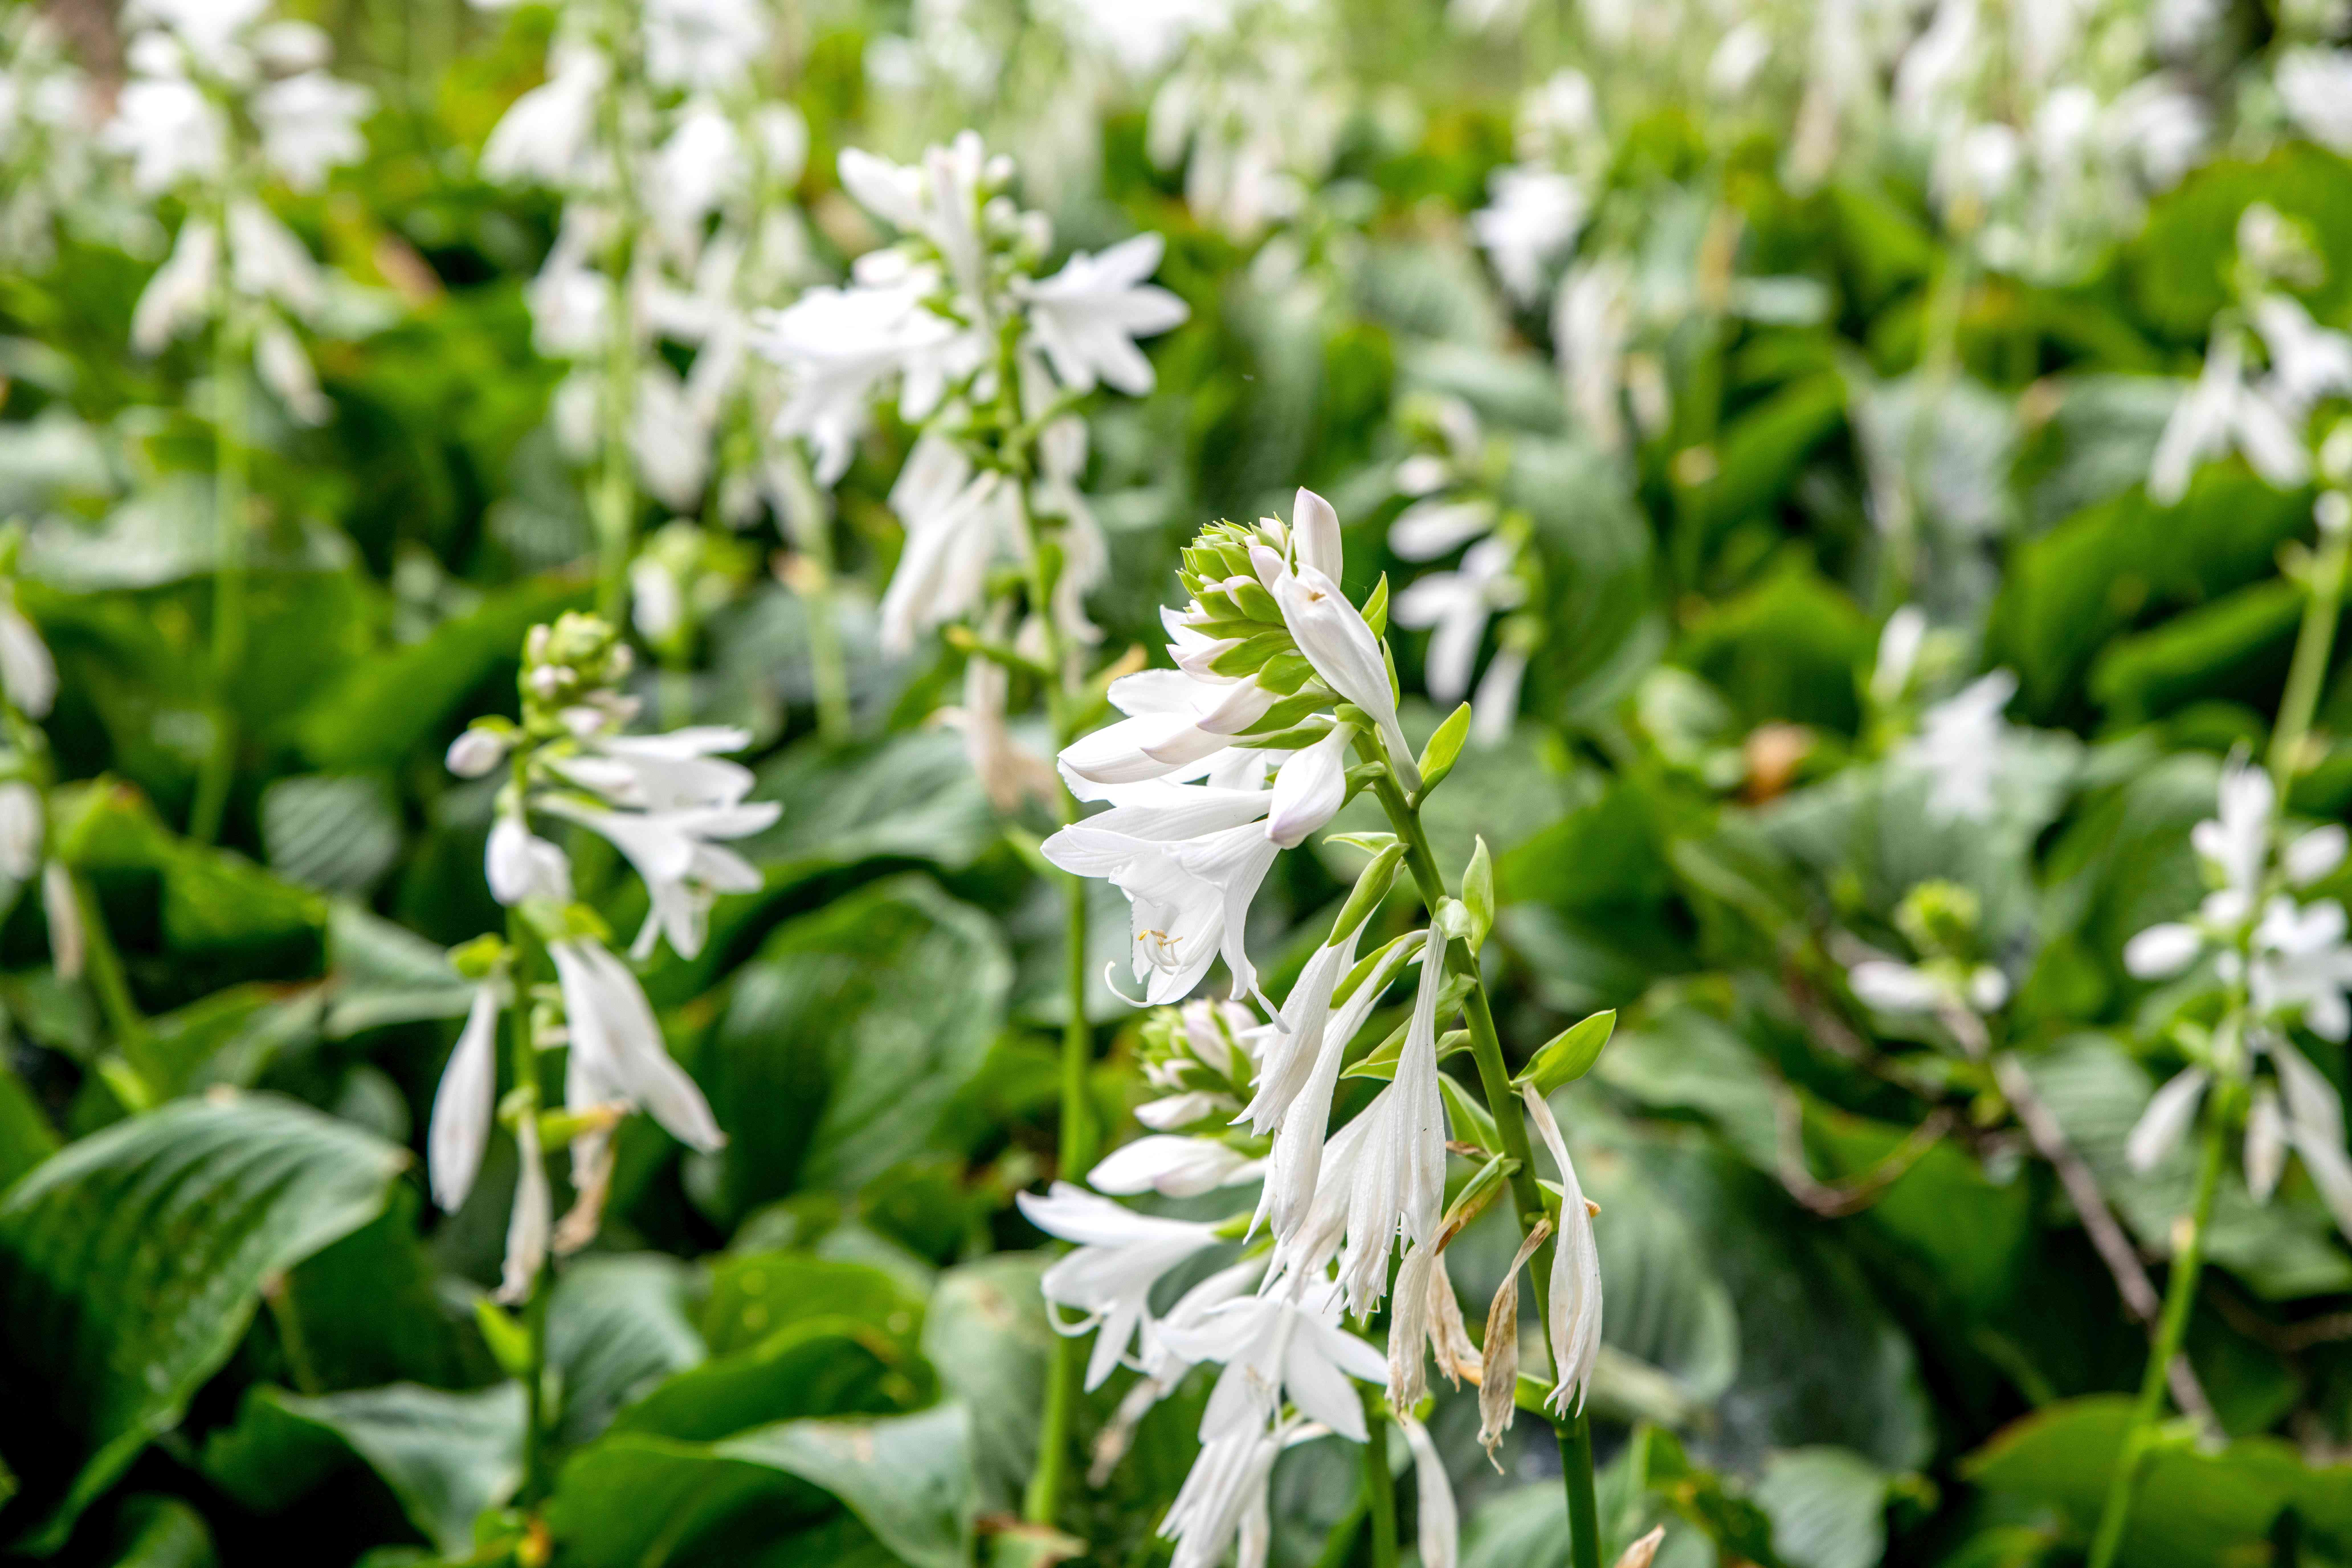 Night blooming white flowers with tiny white flowers on tall stems